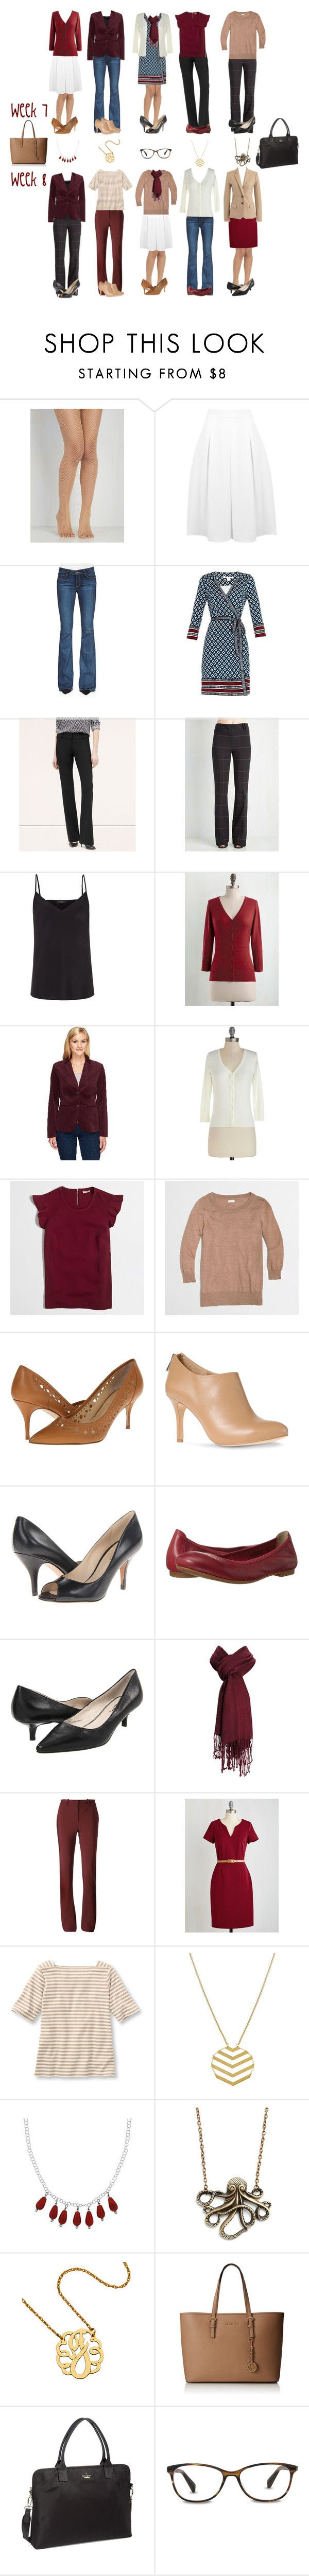 Camel & Cranberry Capsule: Week 7 & 8 by kristin727 on Polyvore featuring Diane Von Furstenberg, J.Crew, MINKPINK, Isaac Mizrahi, Paige Denim, Lanvin, Miss Selfridge, Paul Smith, Nine West and rsvp